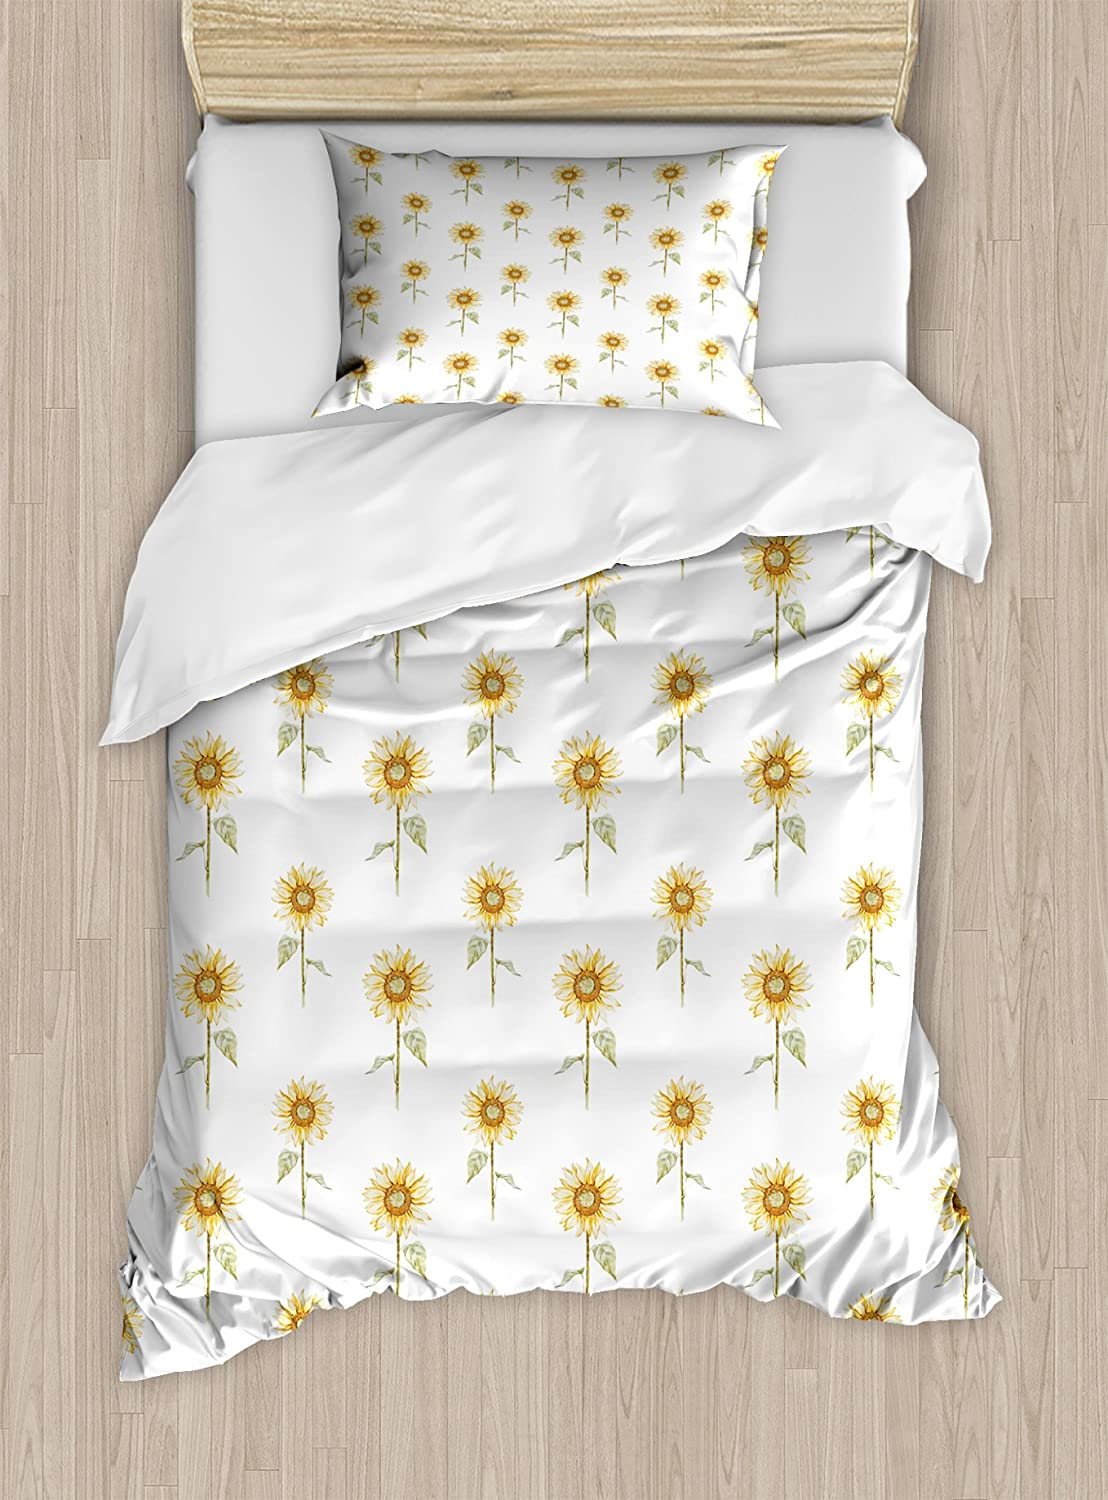 Lunarable Sunflower Duvet Cover Set, Hand Drawn Floral Pattern Watercolor Effect Nature Illustration, Decorative 2 Piece Bedding Set with 1 Pillow Sham, Twin Size, Green Ginger